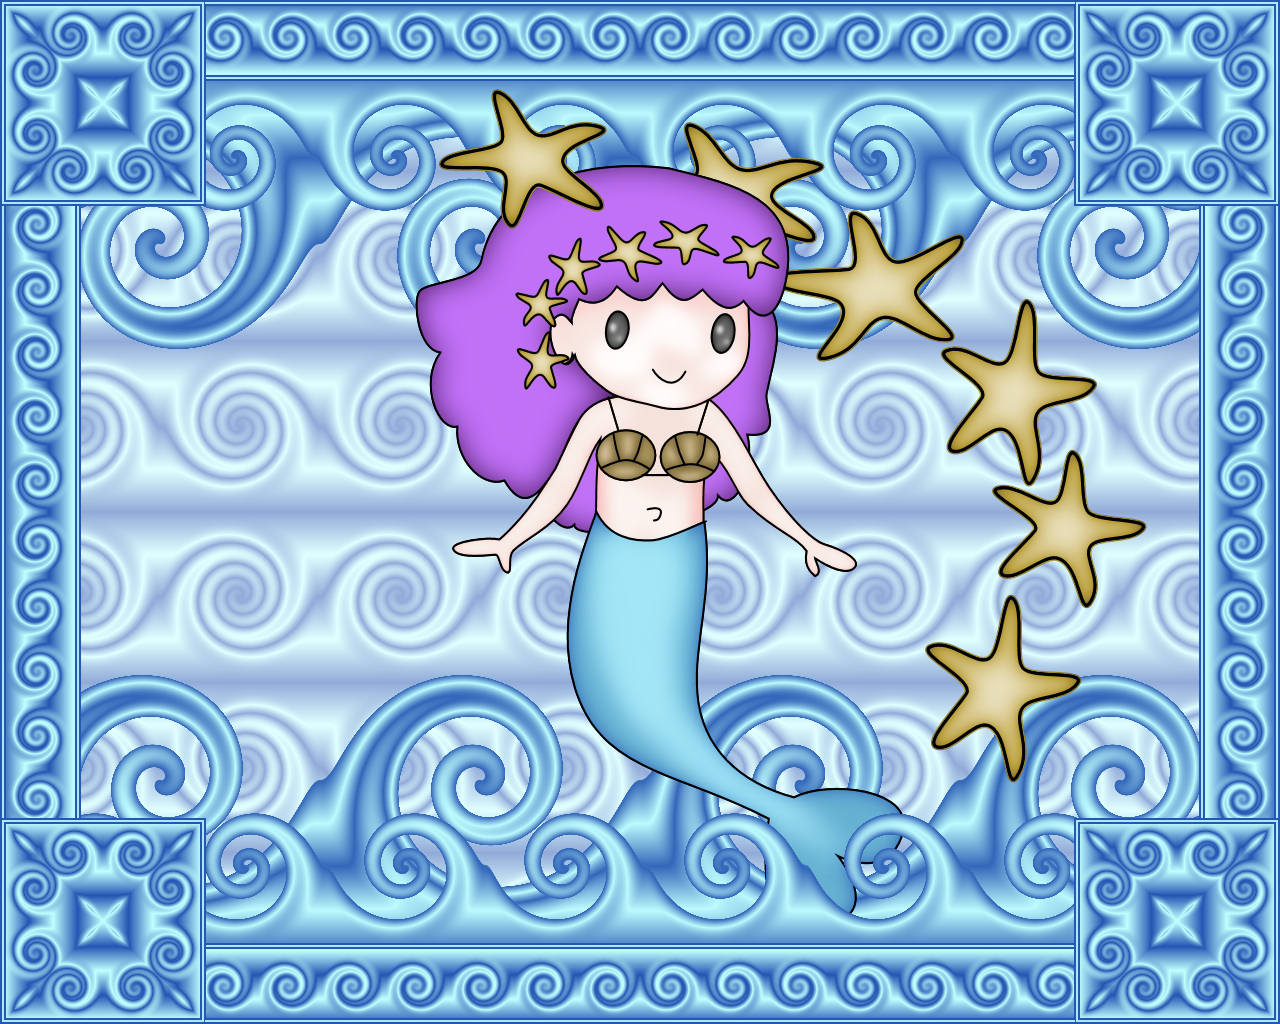 I really loved how cute the mermaid turned out so I used it for a wallpaper.